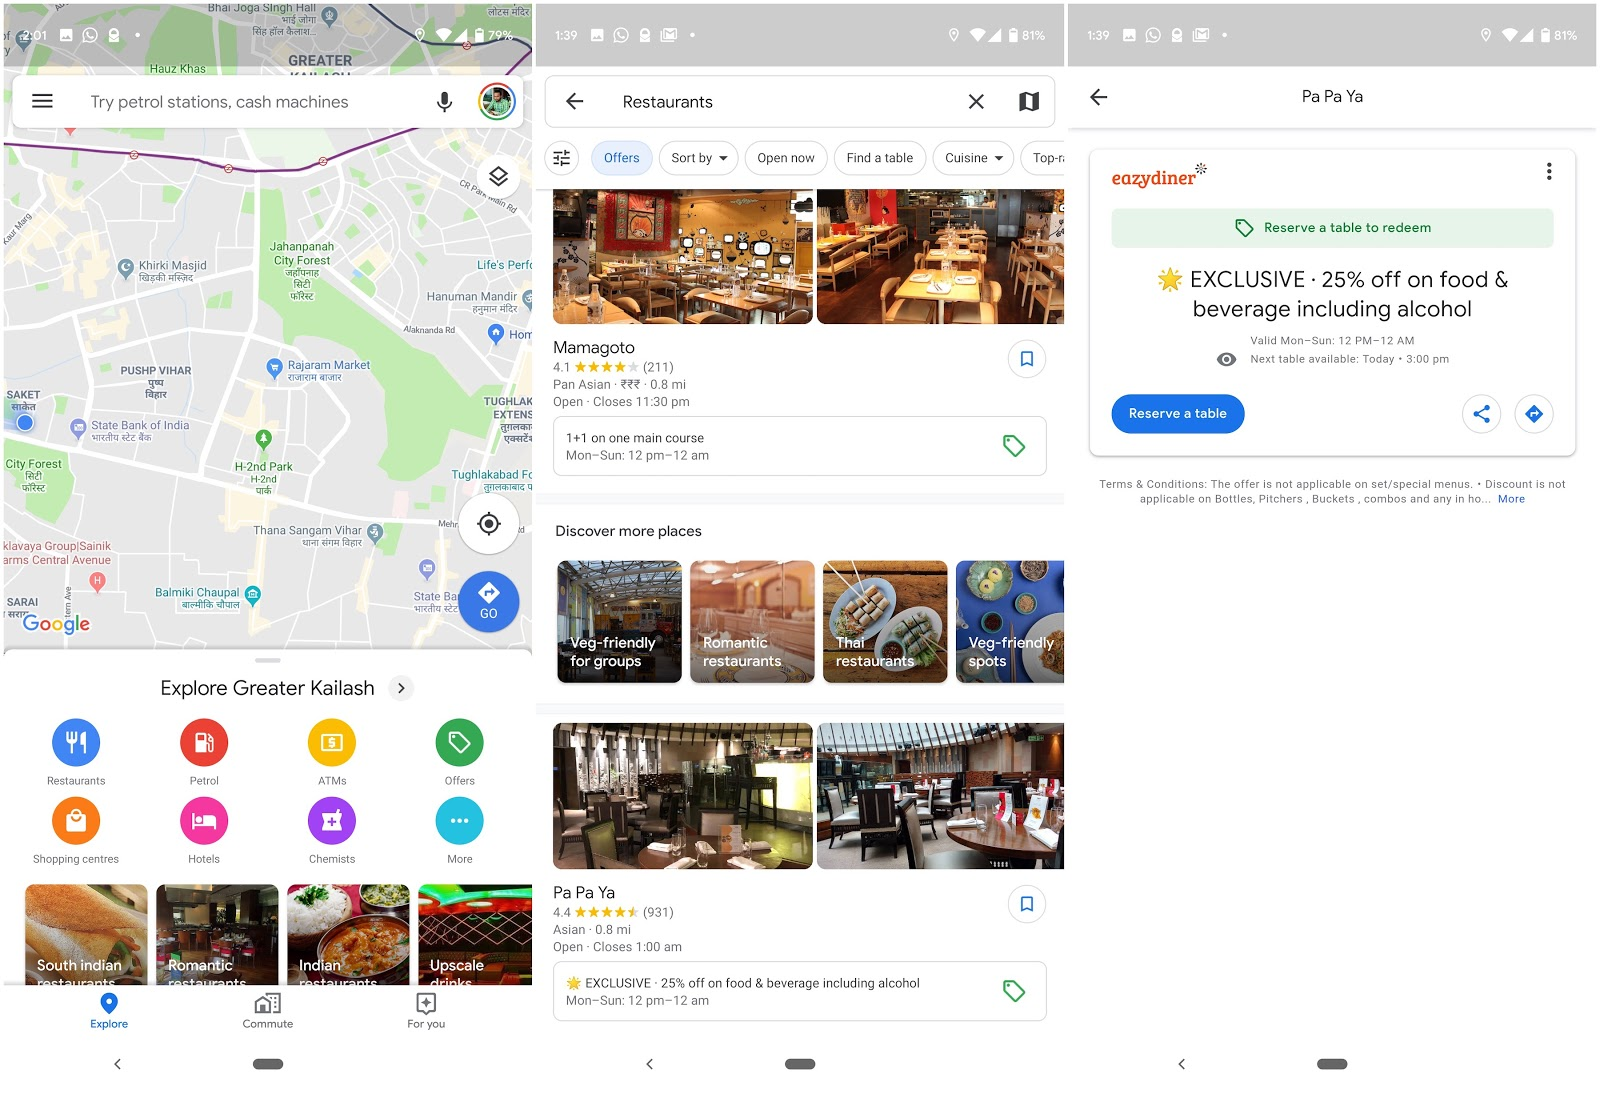 Download Google map 2020 and google earth for android and ... on download bing maps, download london tube map, topographic maps, download business maps, online maps, download icons,